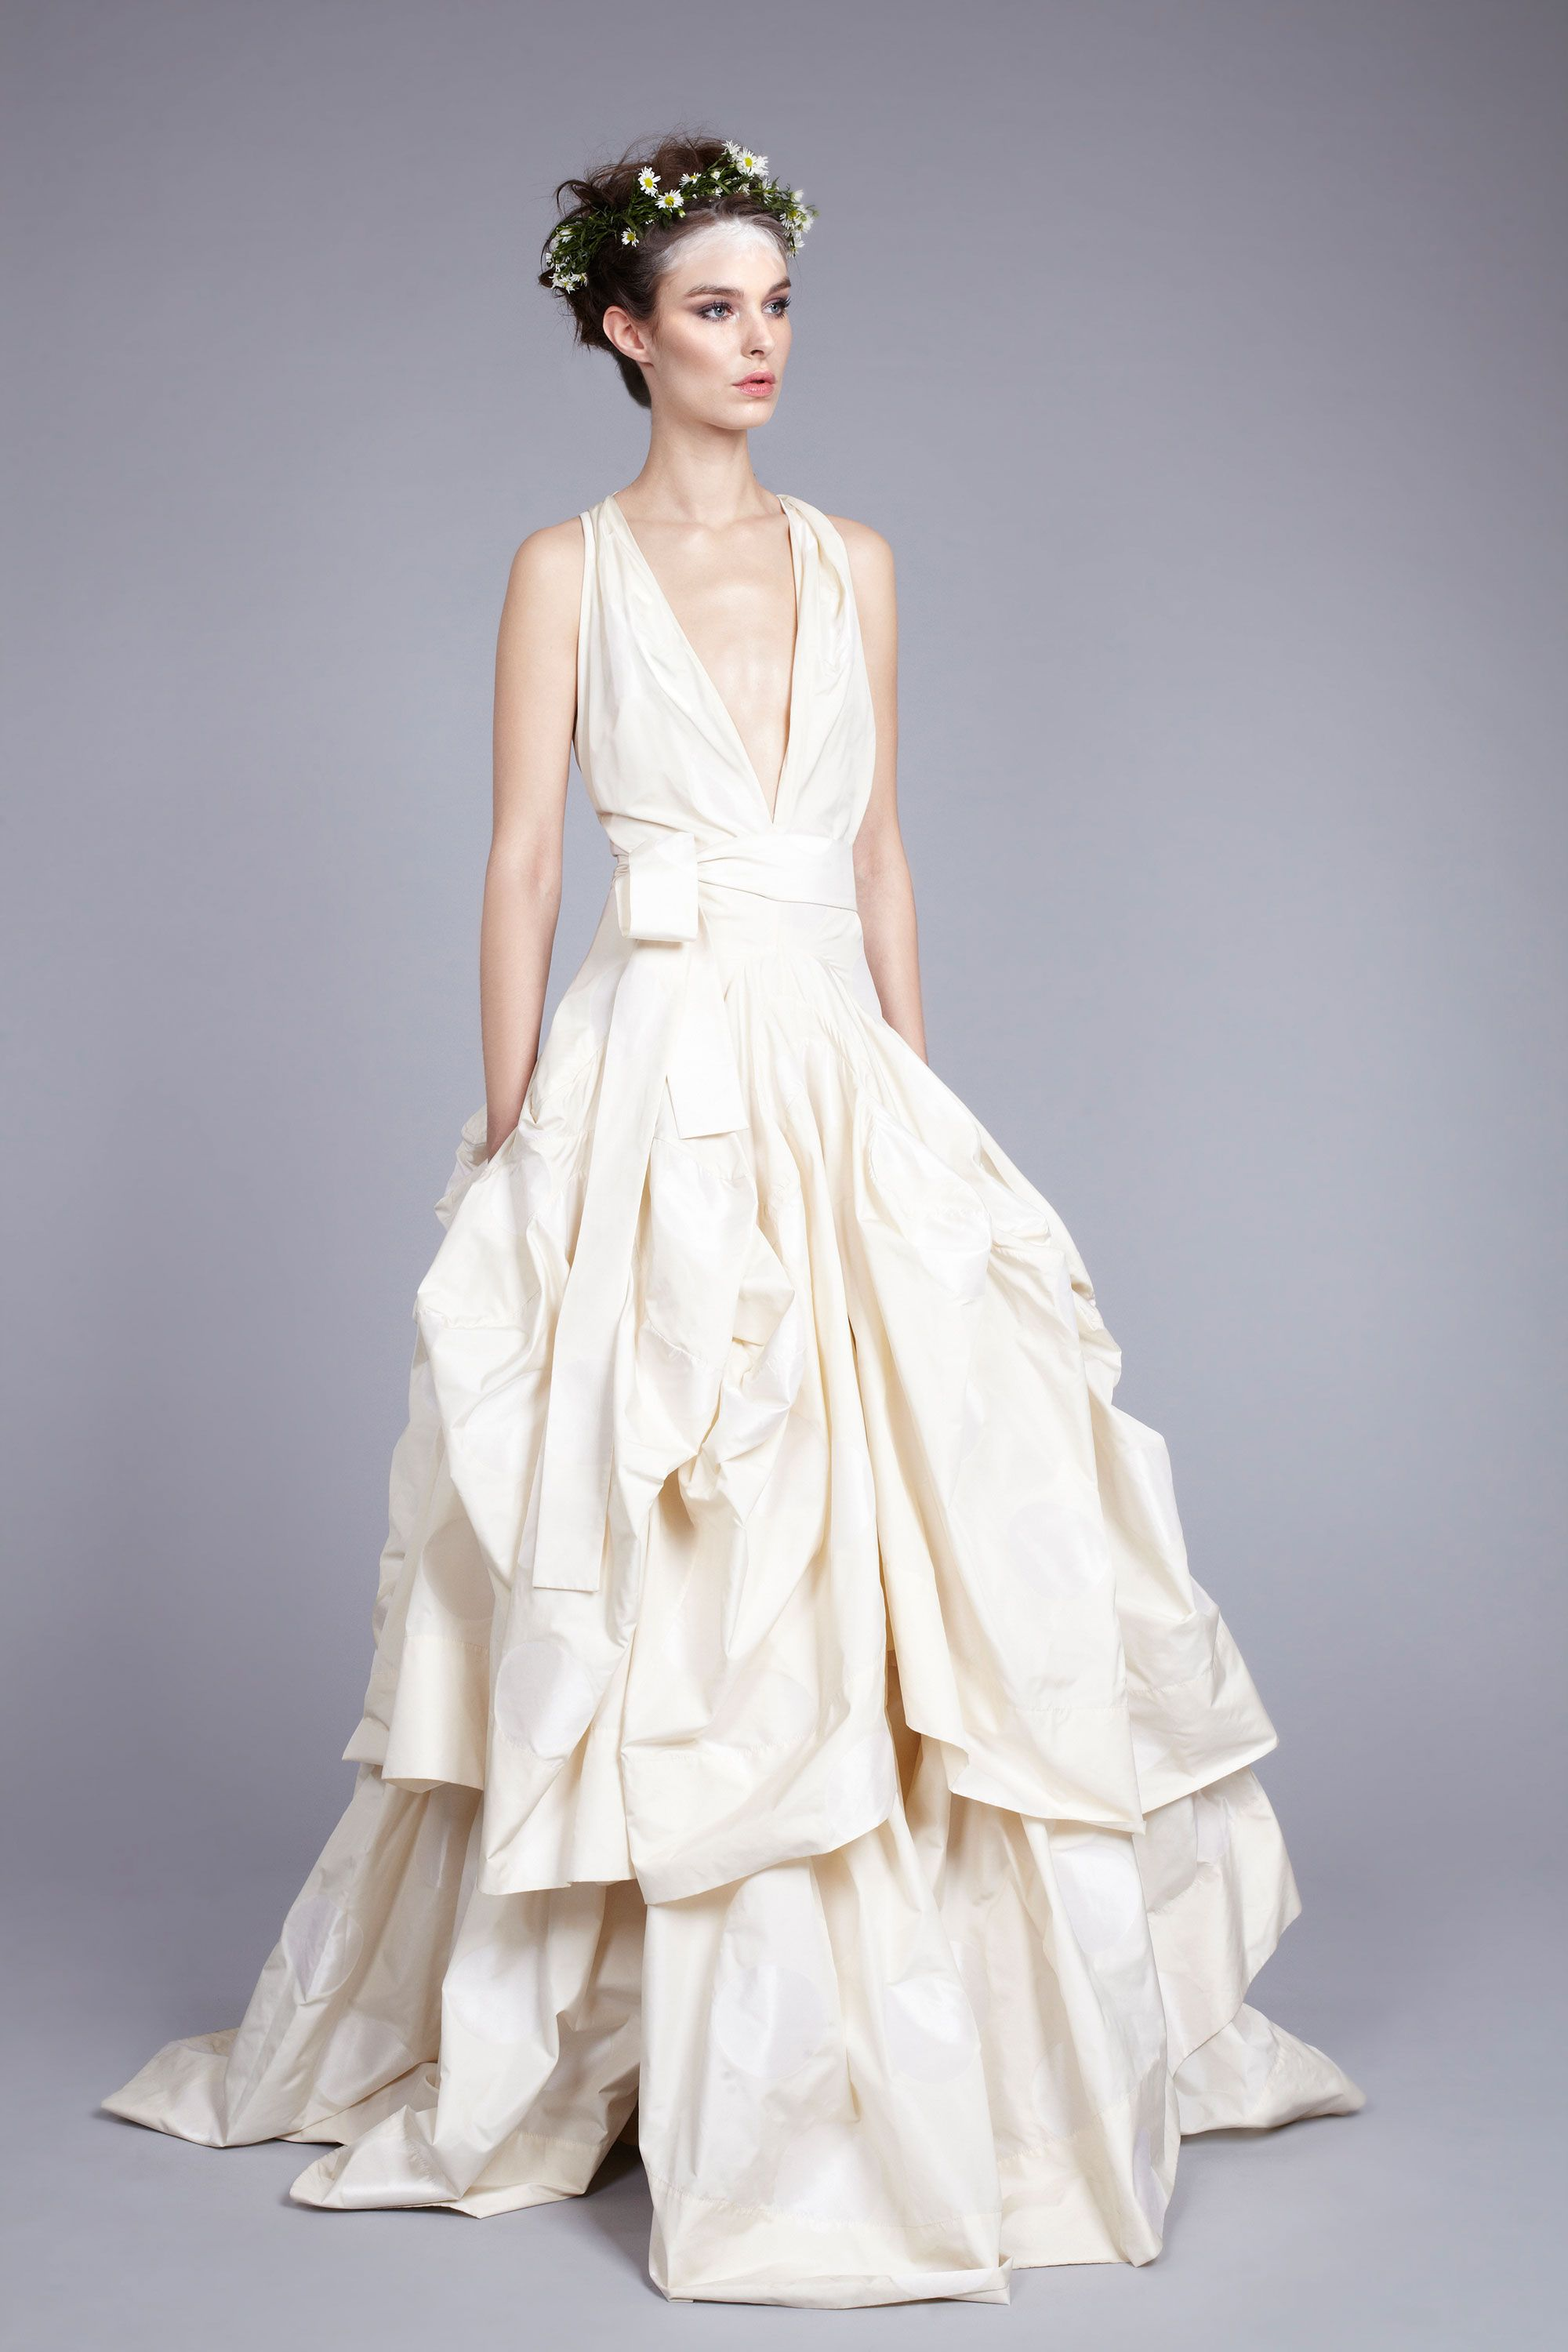 Best in Bridal: Spring 2015 | Vivienne westwood, Vivienne and Spring